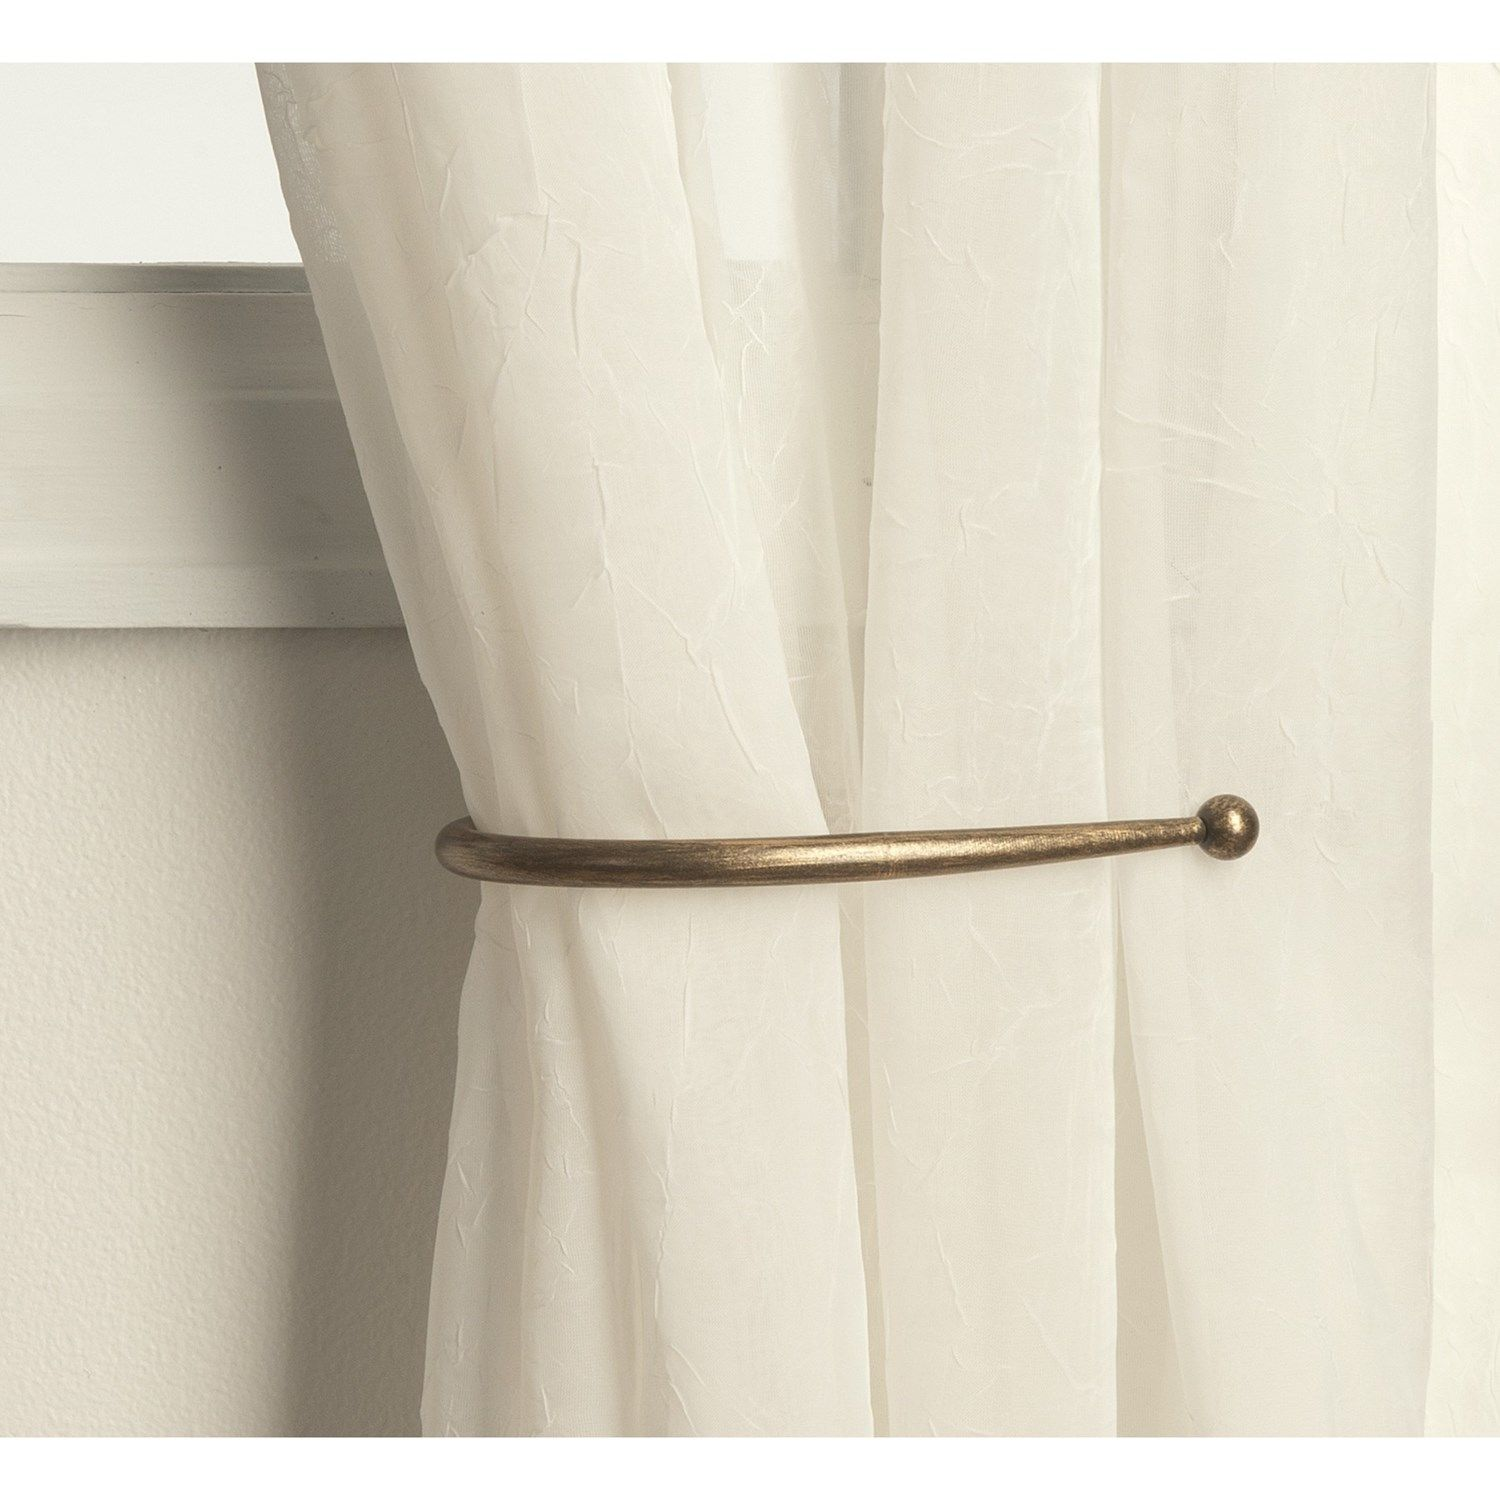 Curtain hardware tiebacks - Curtain Holdbacks Check Various Designs And Colors Of Curtain Holdbacks On Pretty Home Also Check Magnetic Curtain Rods